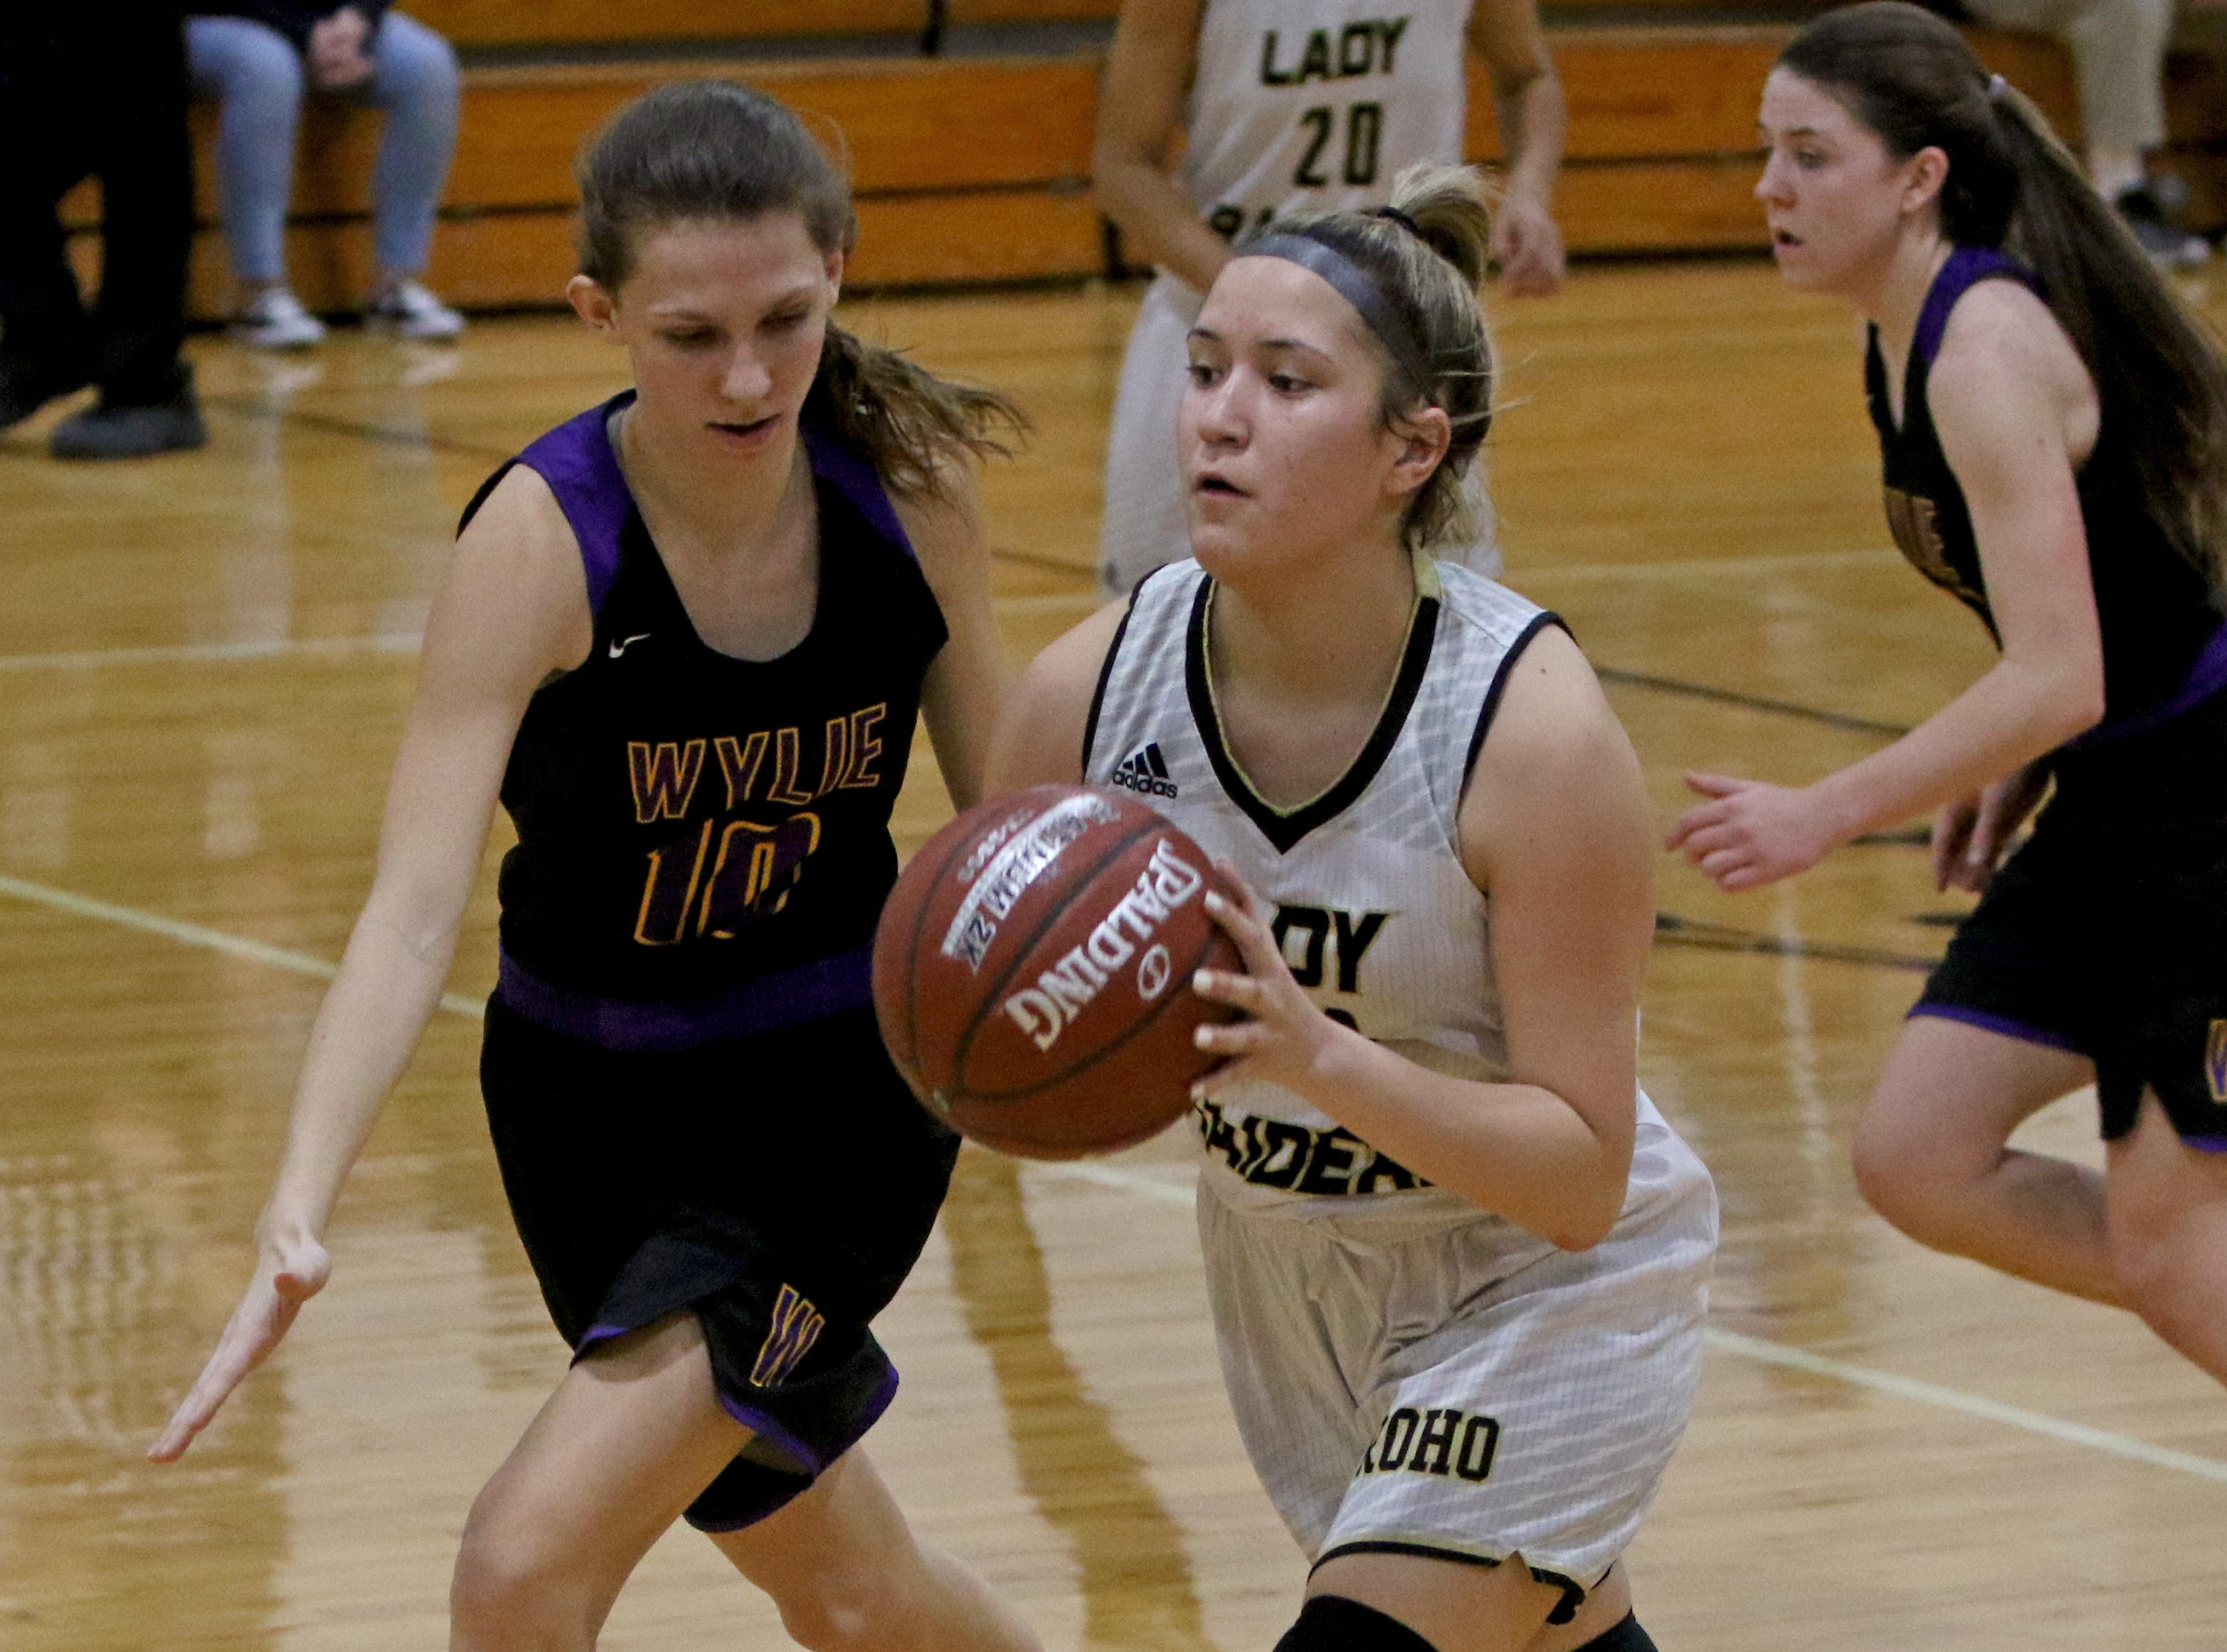 Rider's Atlea Cooke passes by Abilene Wylie's Abbey Henson Friday, Jan. 4, 2019 at McNiel Middle School.